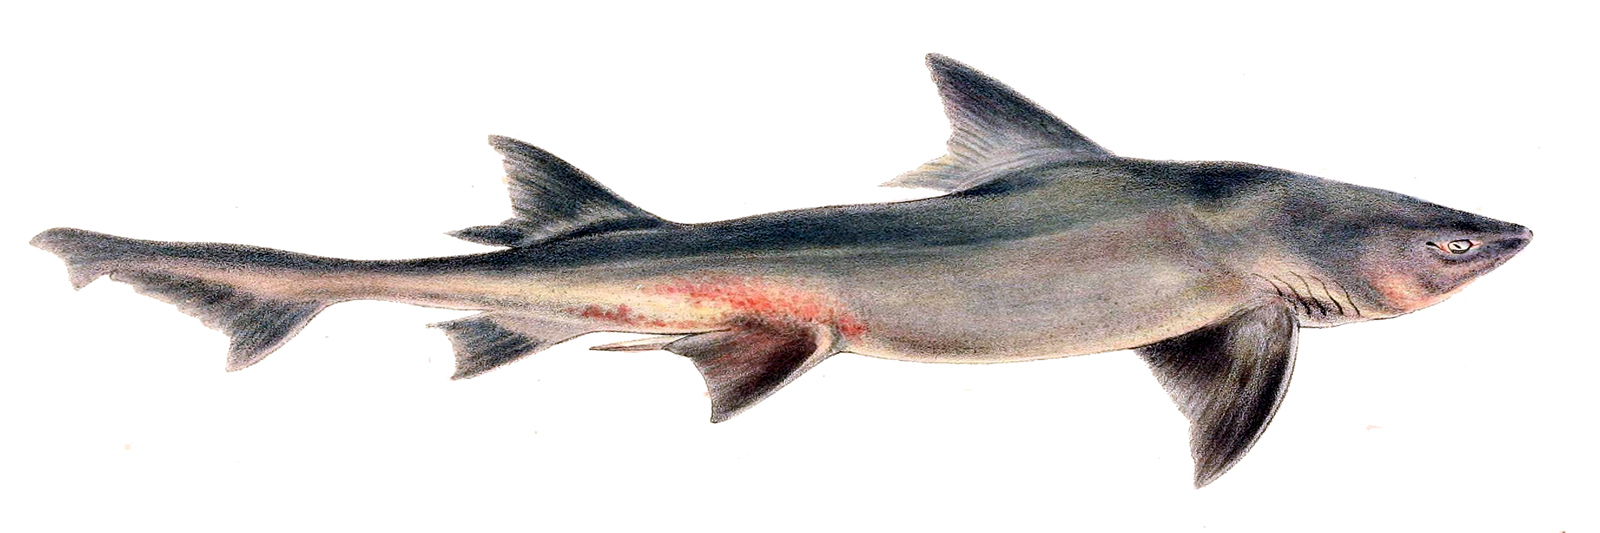 Image of Spotted Gully Shark